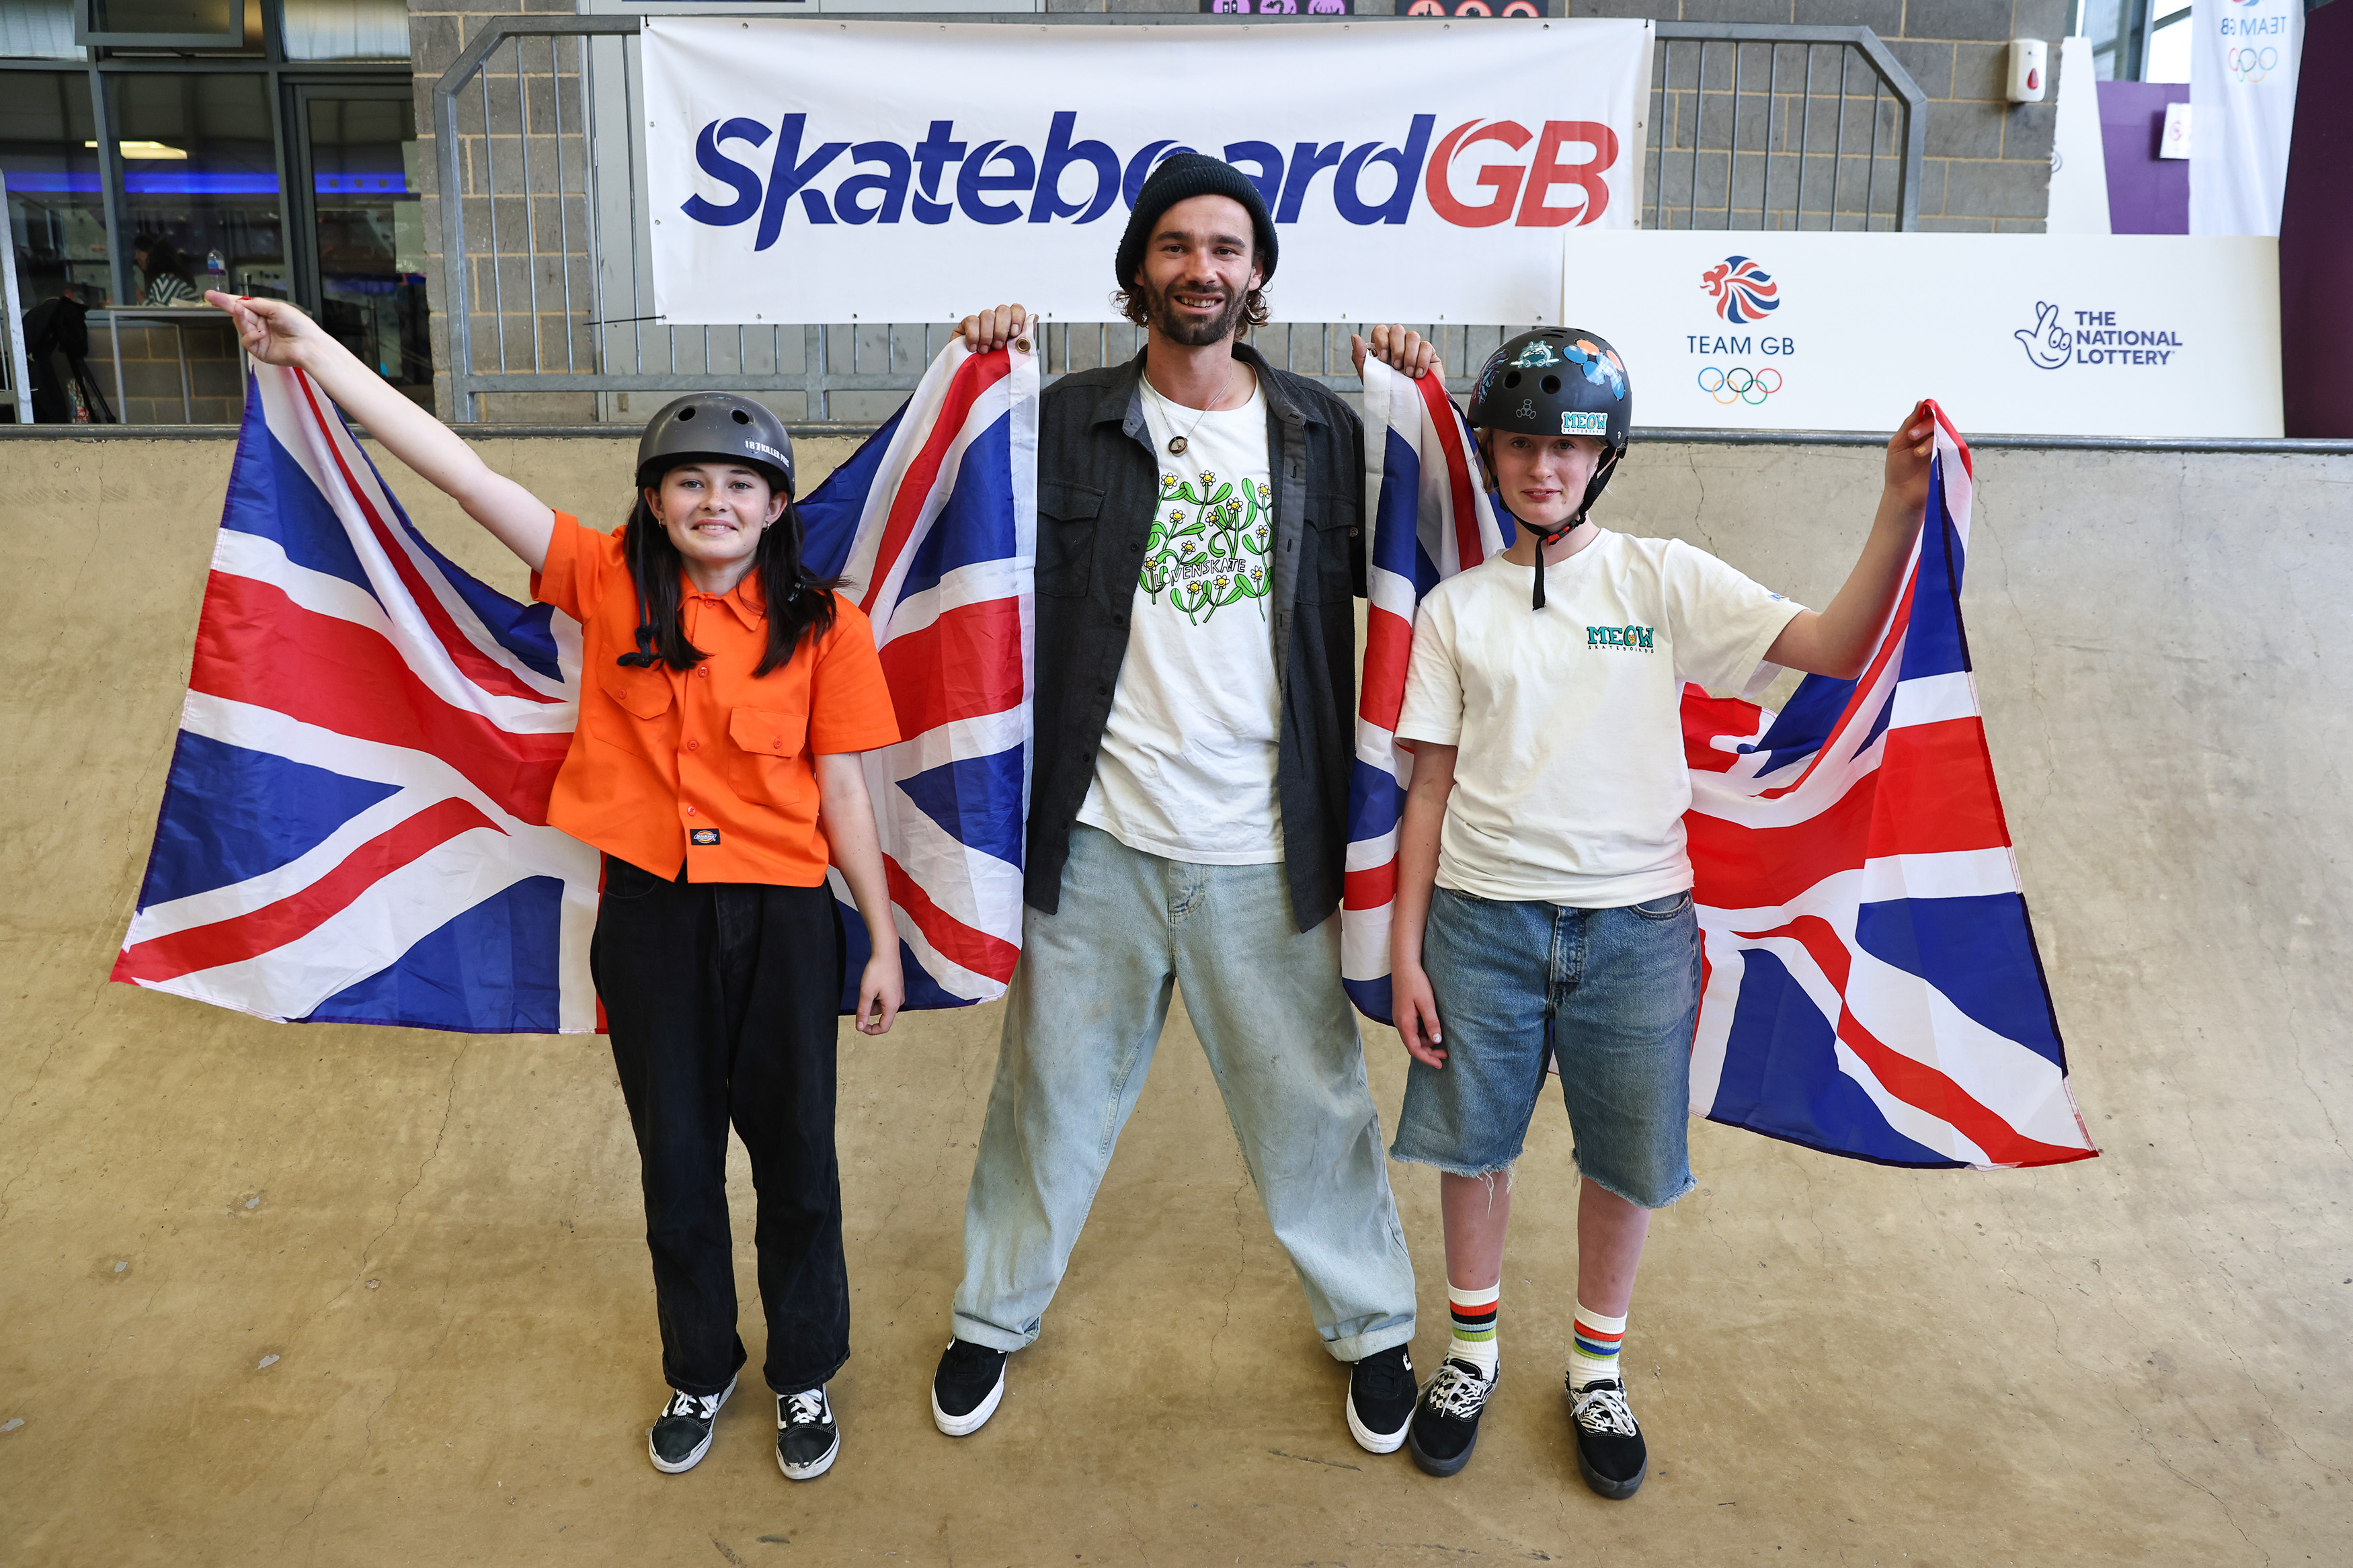 <p>HEMEL HEMPSTEAD, ENGLAND - AUGUST 04: Lola Tambling, Alex Halford and Miriam Nelson pose with the GB flag as Team GB Sky Brown's Olympic Bronze medal inspires the next generation of female skateboarders at the XC on August 4, 2021 in Hemel Hempstead, England. (Photo by Marc Atkins/Getty Images for National Lottery)</p>